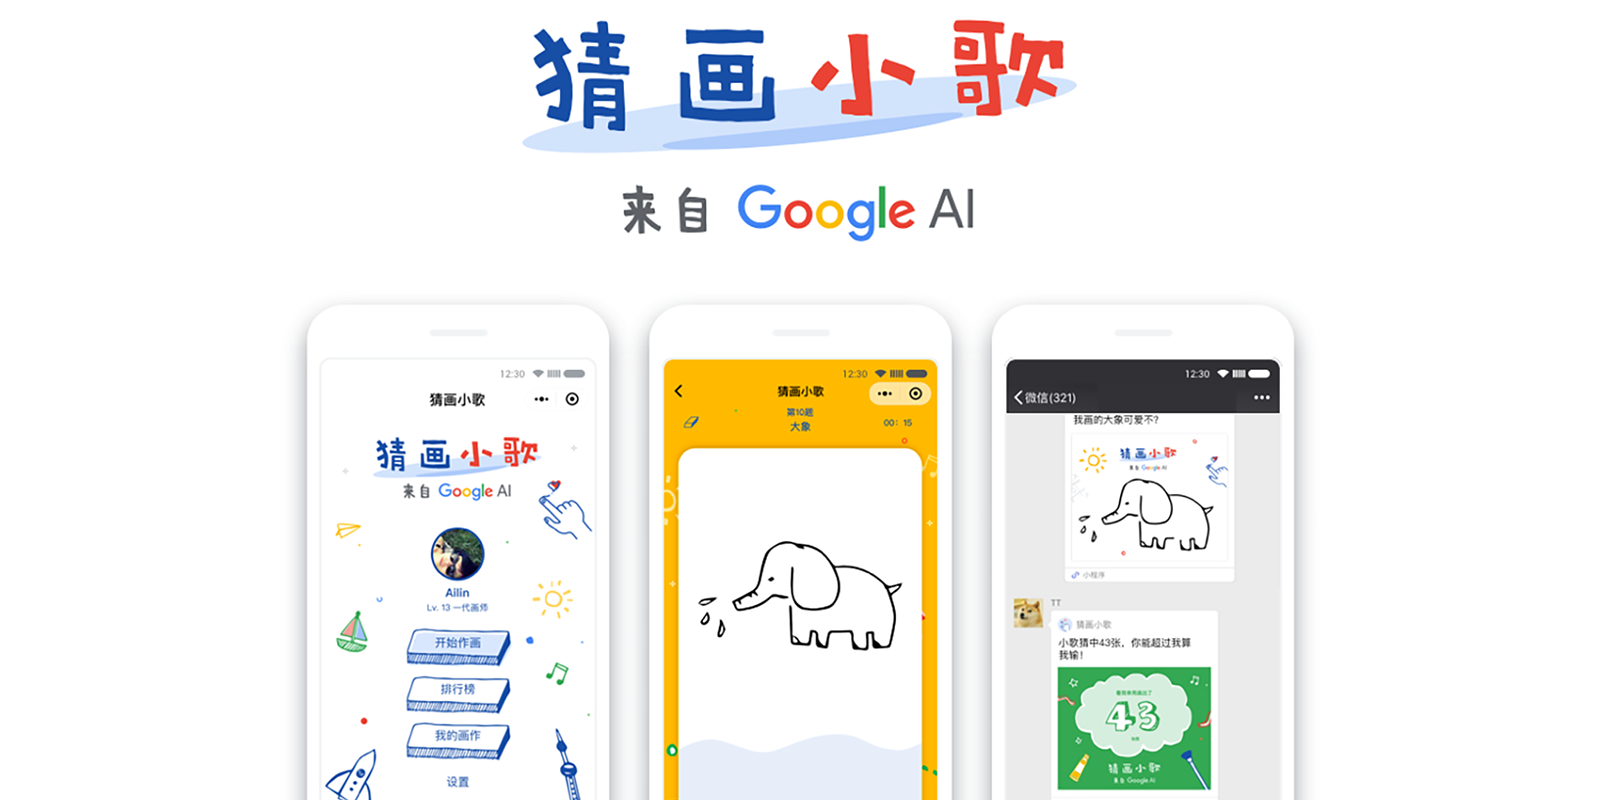 google ai launches quick draw like wechat game to showcase neural networks in china